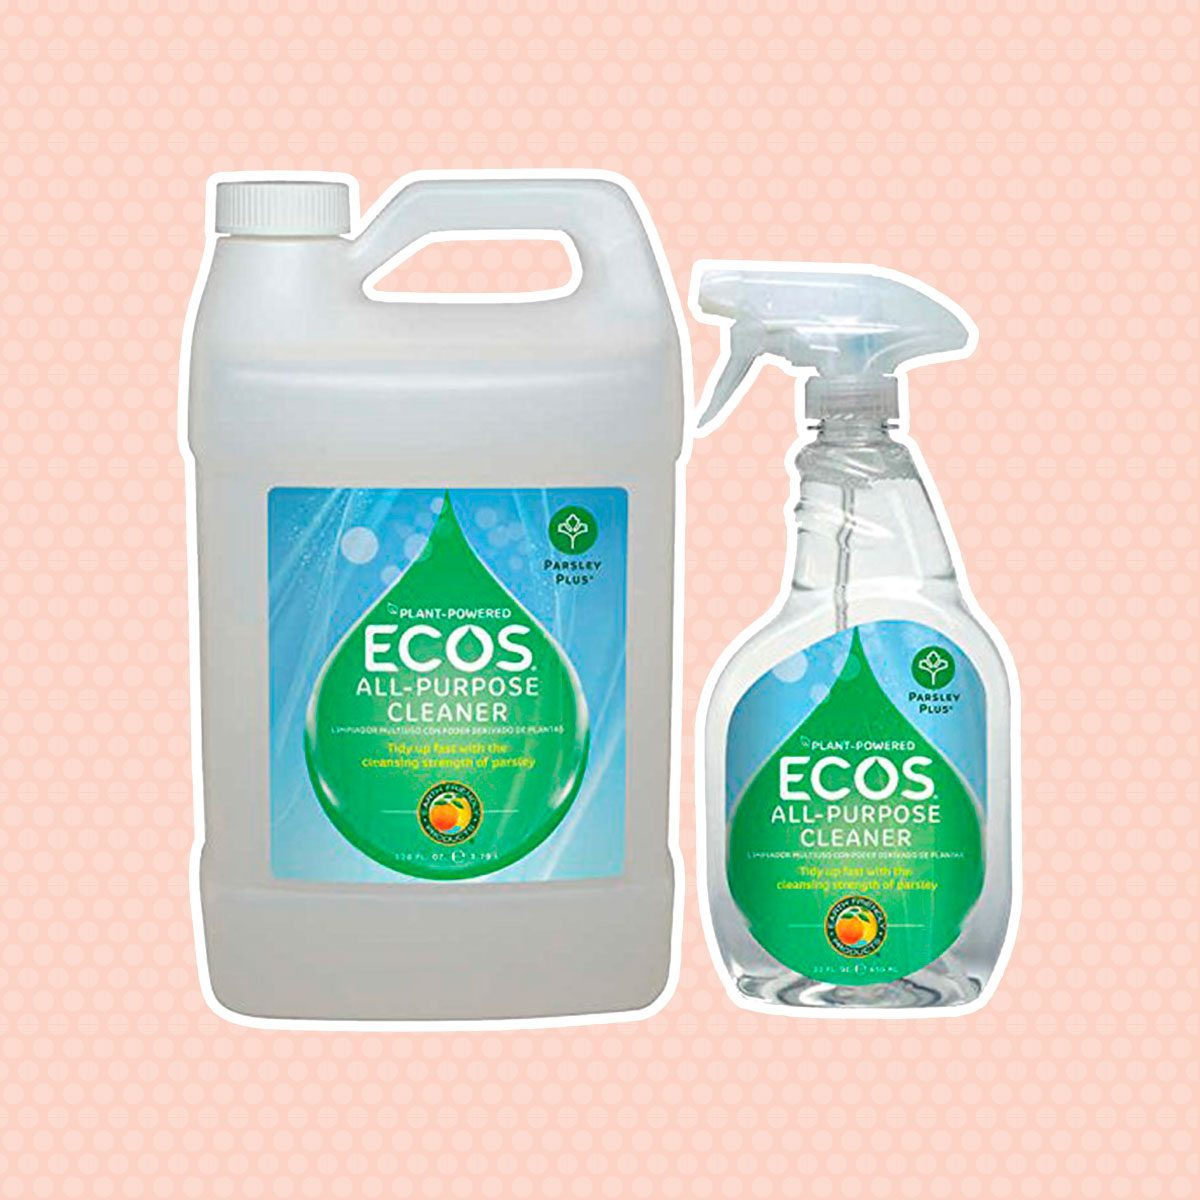 ECOS All Purpose Cleaner